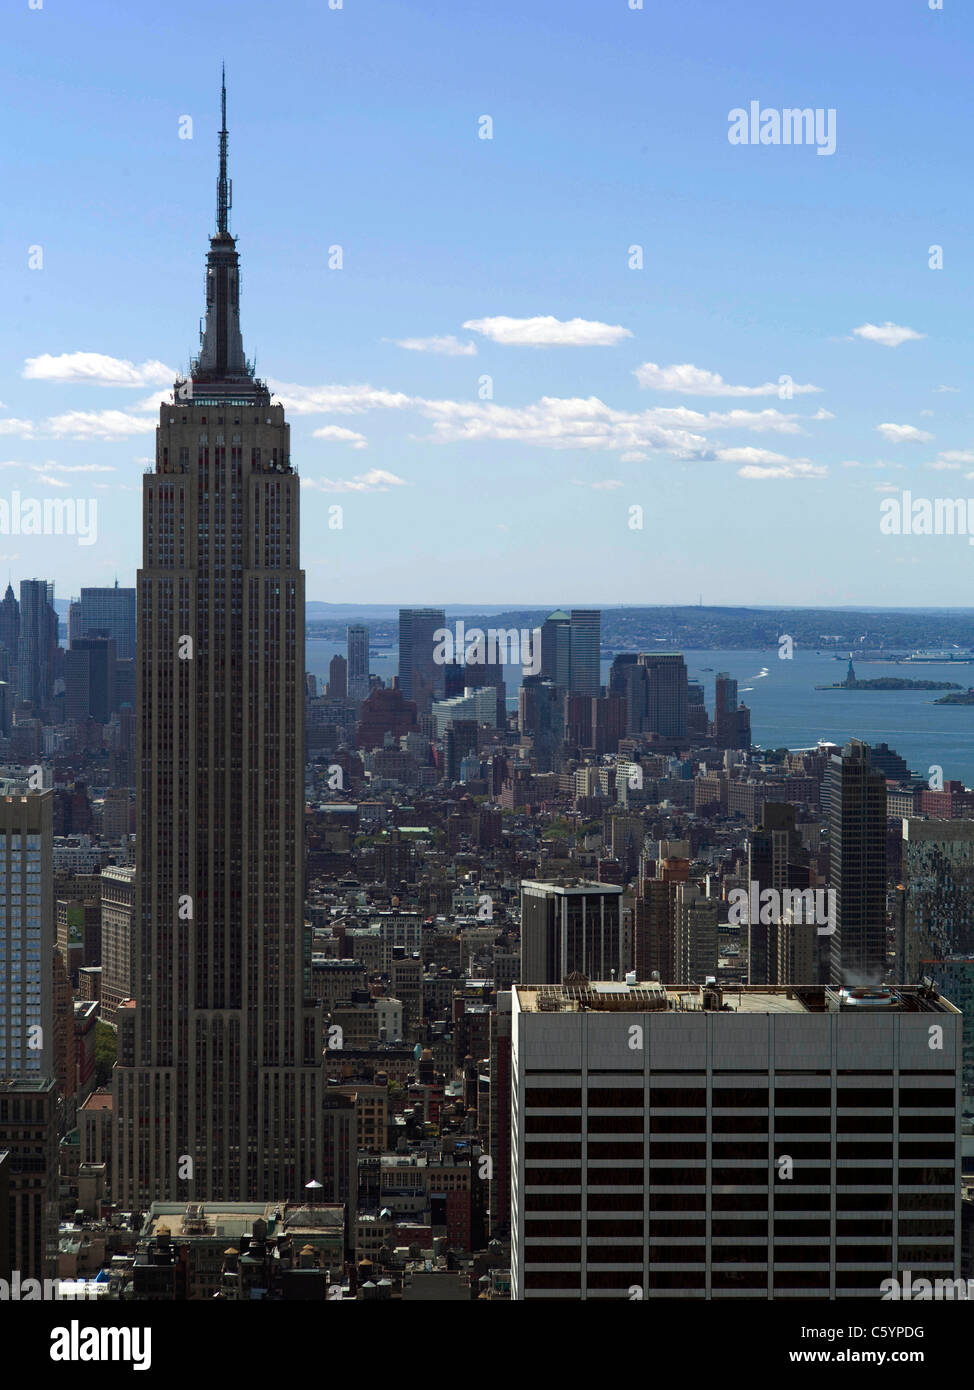 Empire State Building New York Big Apple manhattan Photo Stock